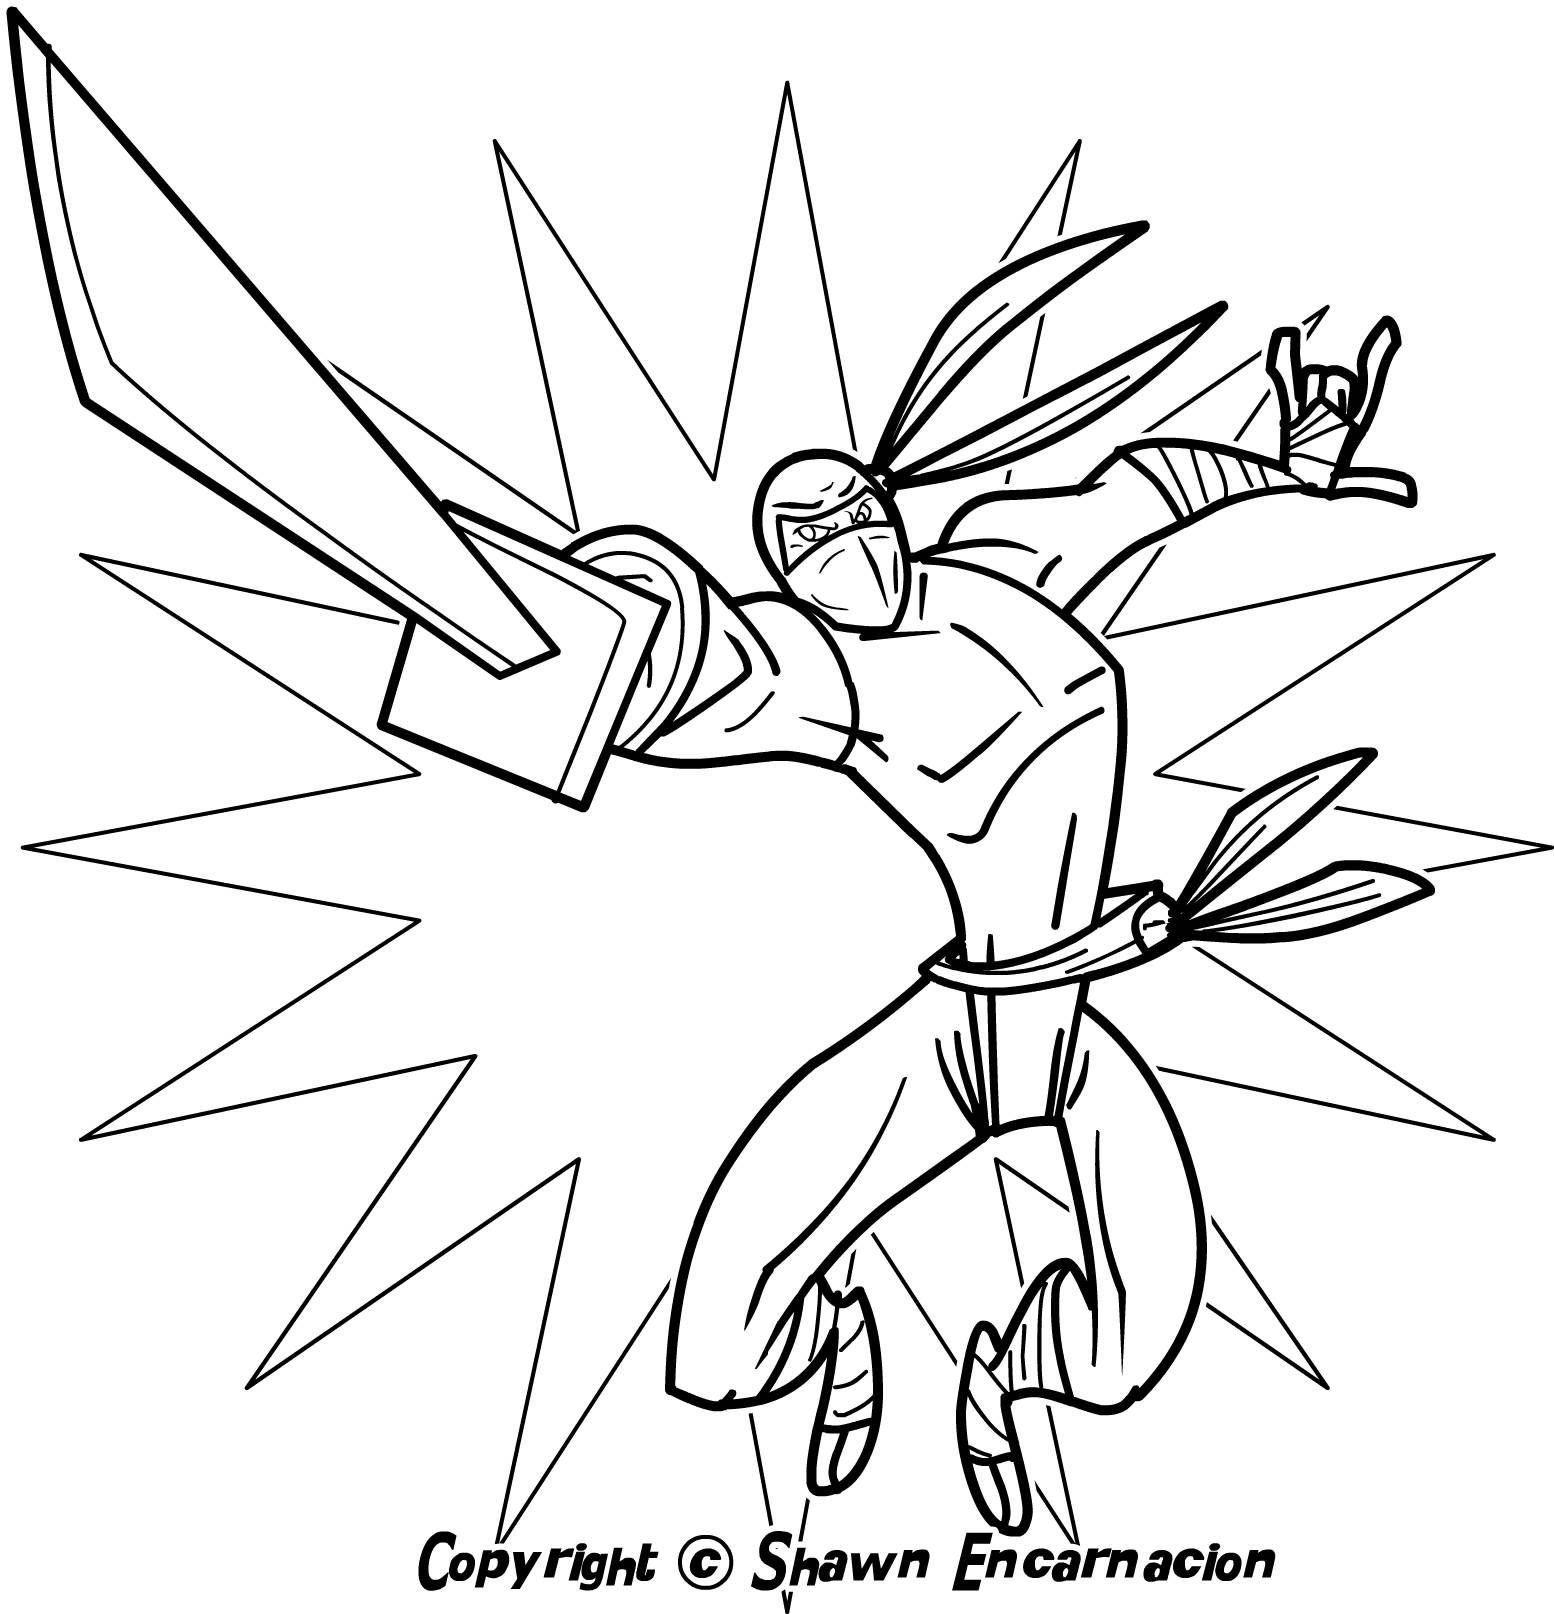 Ninja coloring pages to download